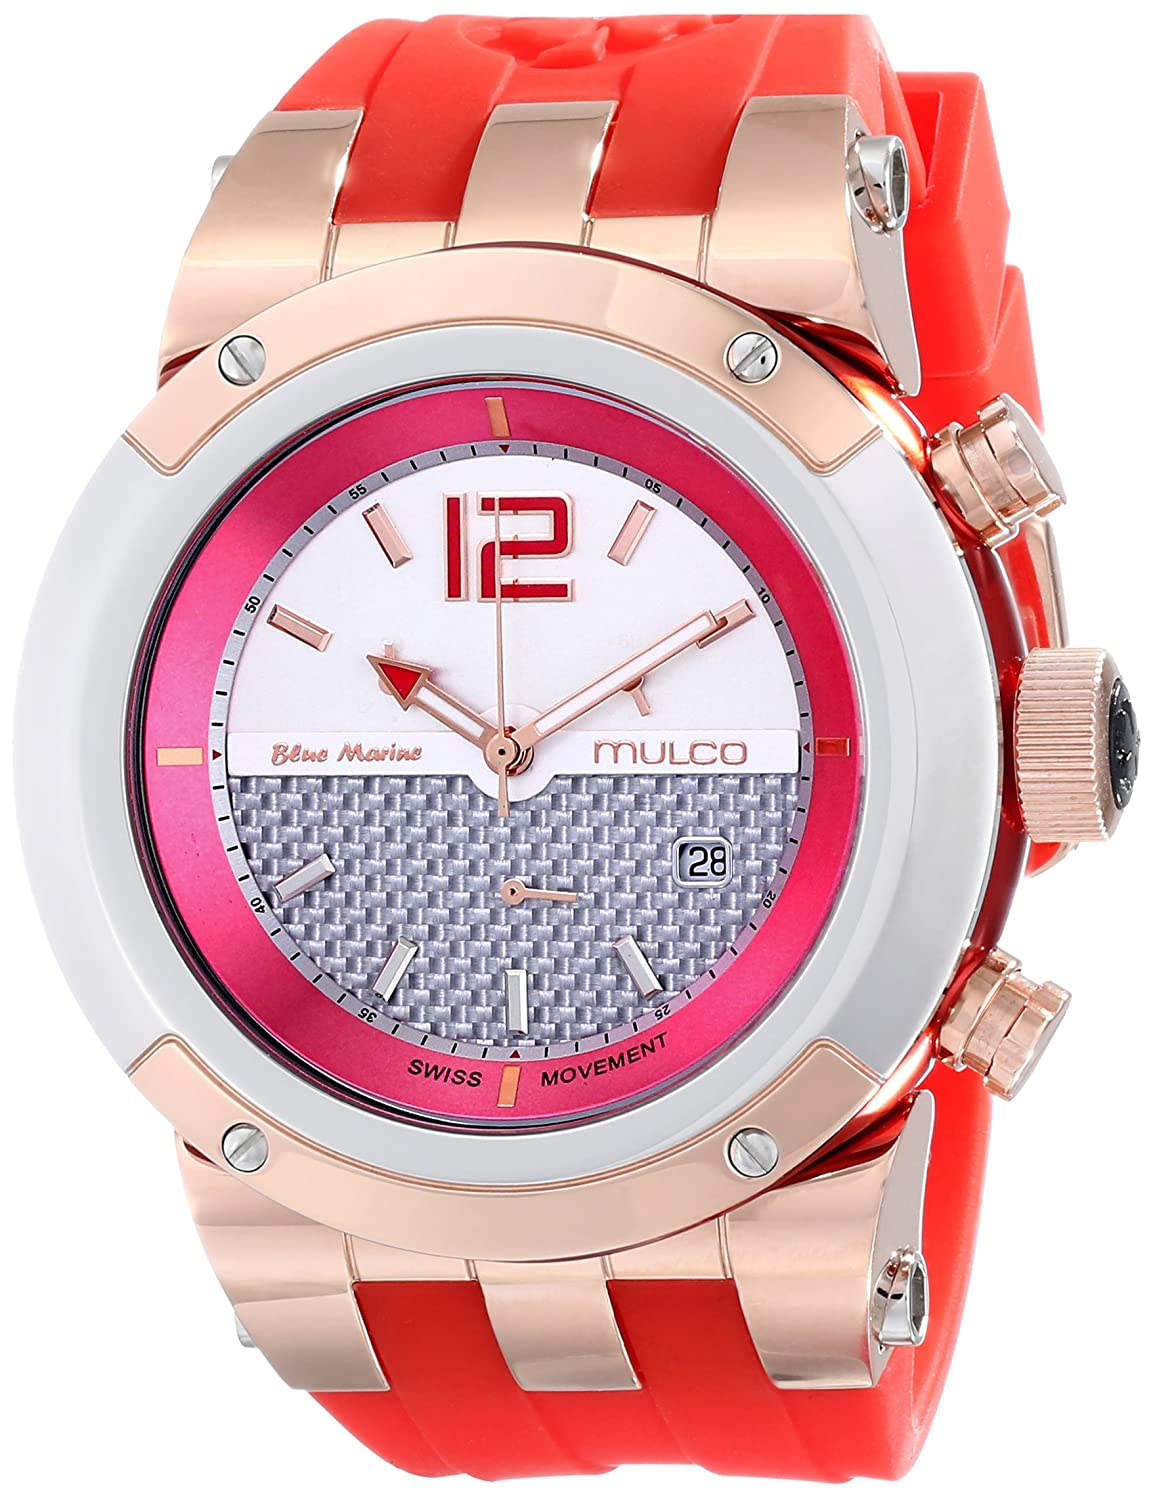 MULCO Unisex MW5-1621-061 Analog Display Swiss Quartz Red Armbanduhr